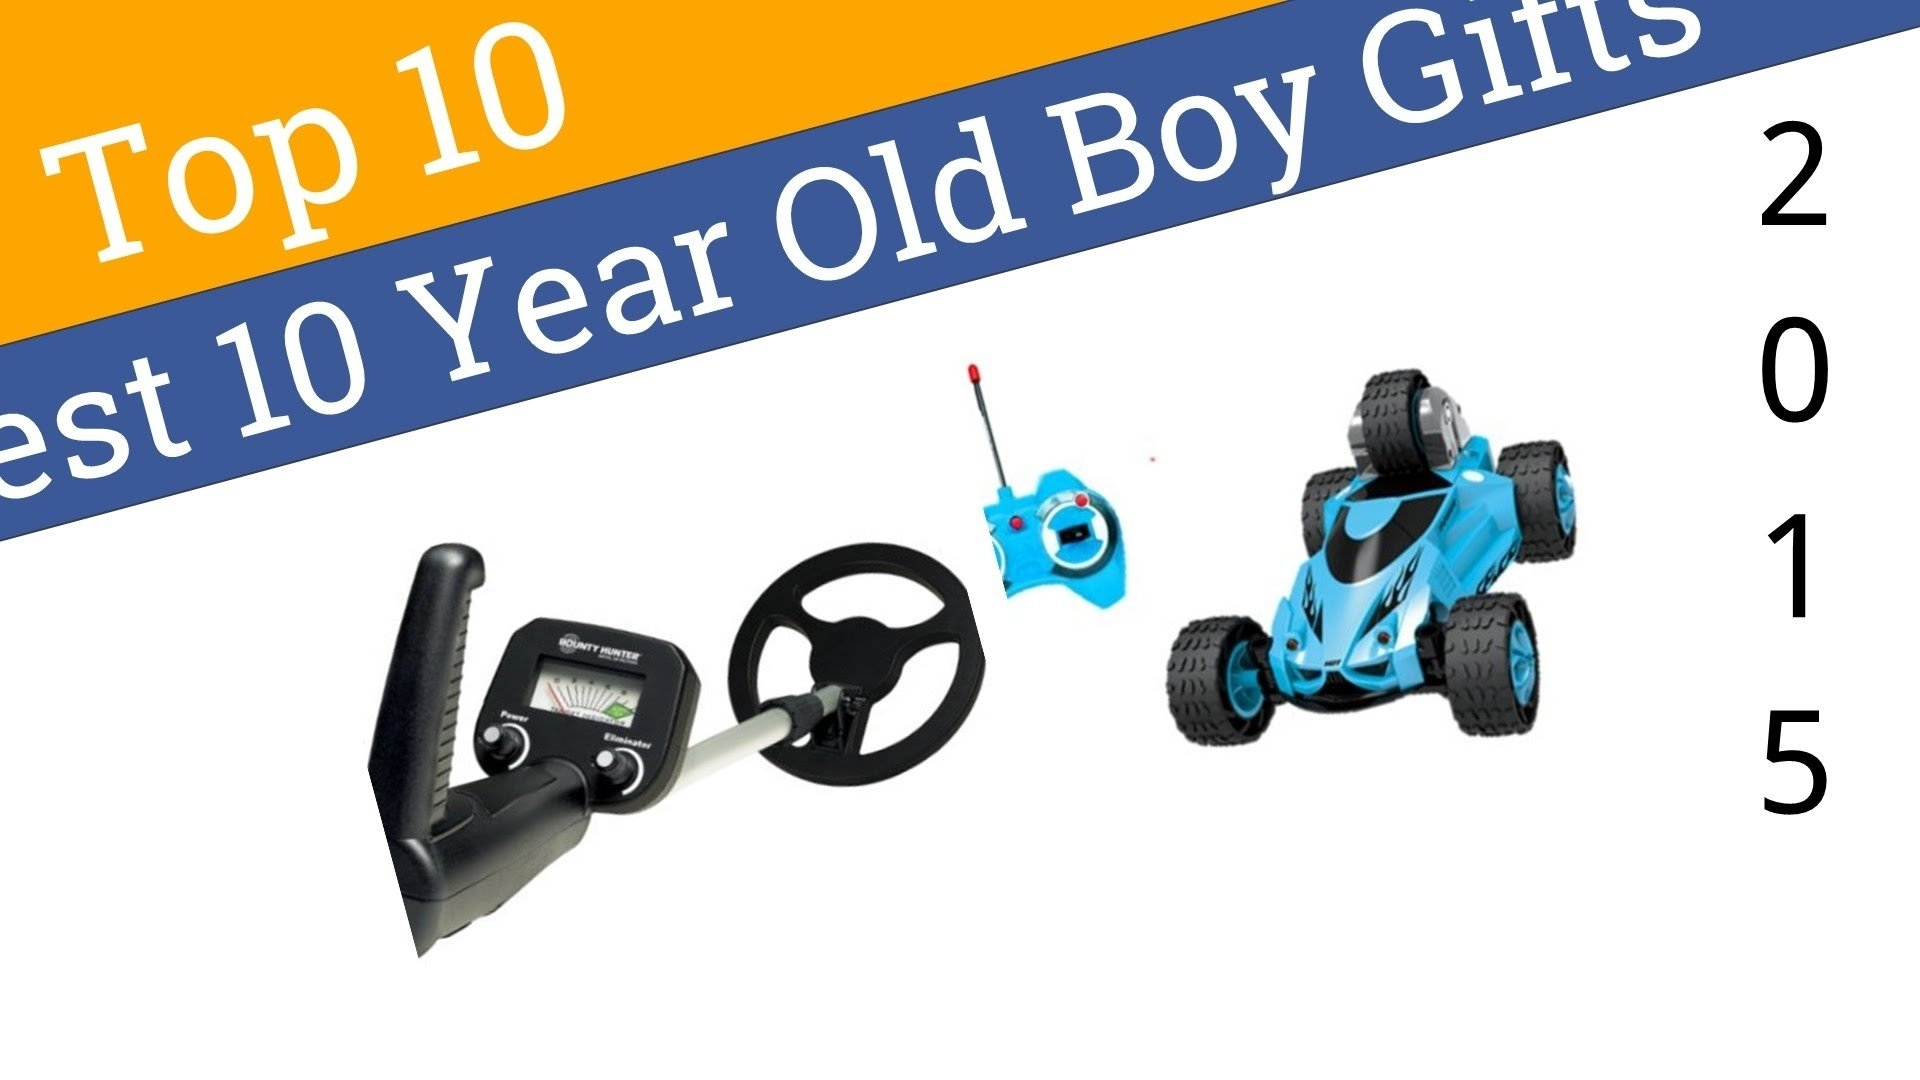 10 Pretty Christmas Gift Ideas For 17 Year Old Boy astounding inspiration best christmas gifts for 10 year old boy boys 2021